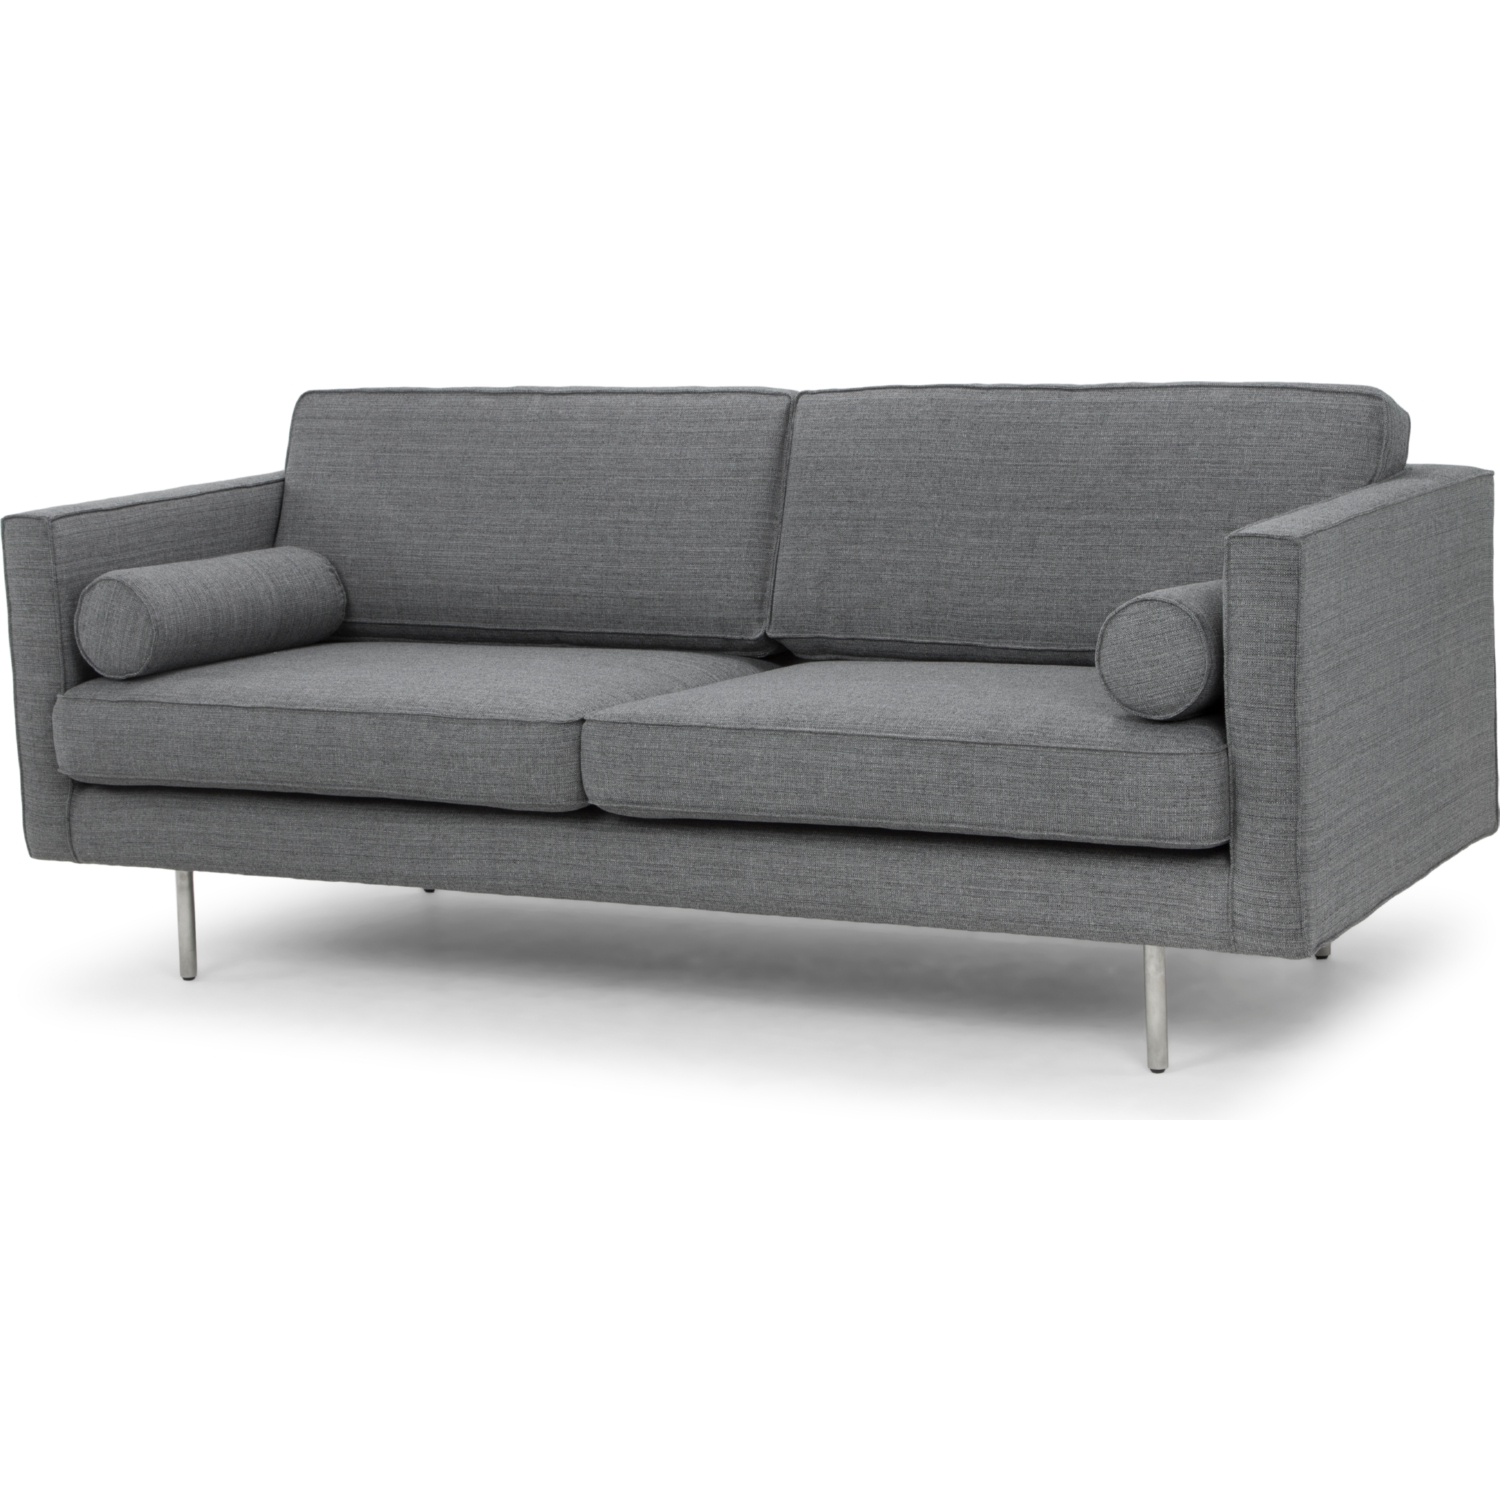 Brilliant Cyrus Sofa In Grey Tweed Fabric On Brushed Stainless Legs By Nuevo Modern Furniture Machost Co Dining Chair Design Ideas Machostcouk